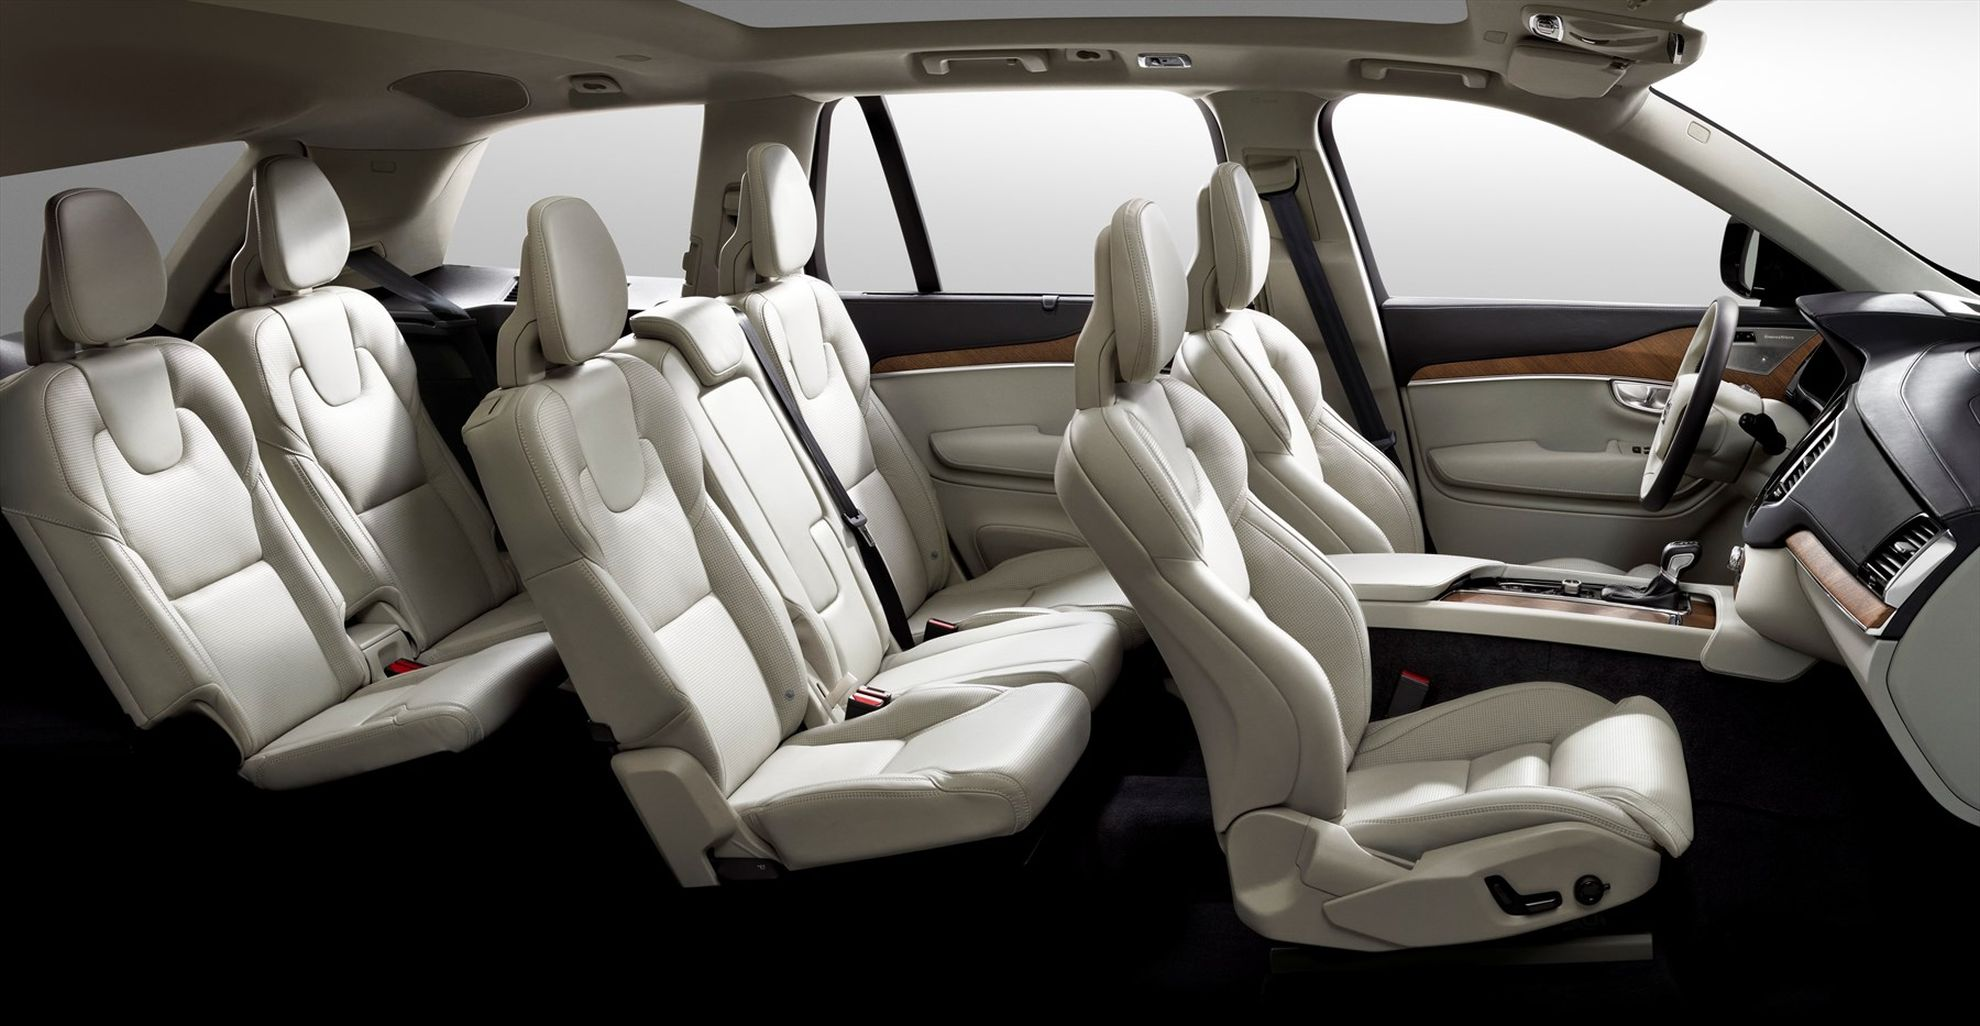 new car launches south africaAllNew Volvo XC90 Launched in South Africa